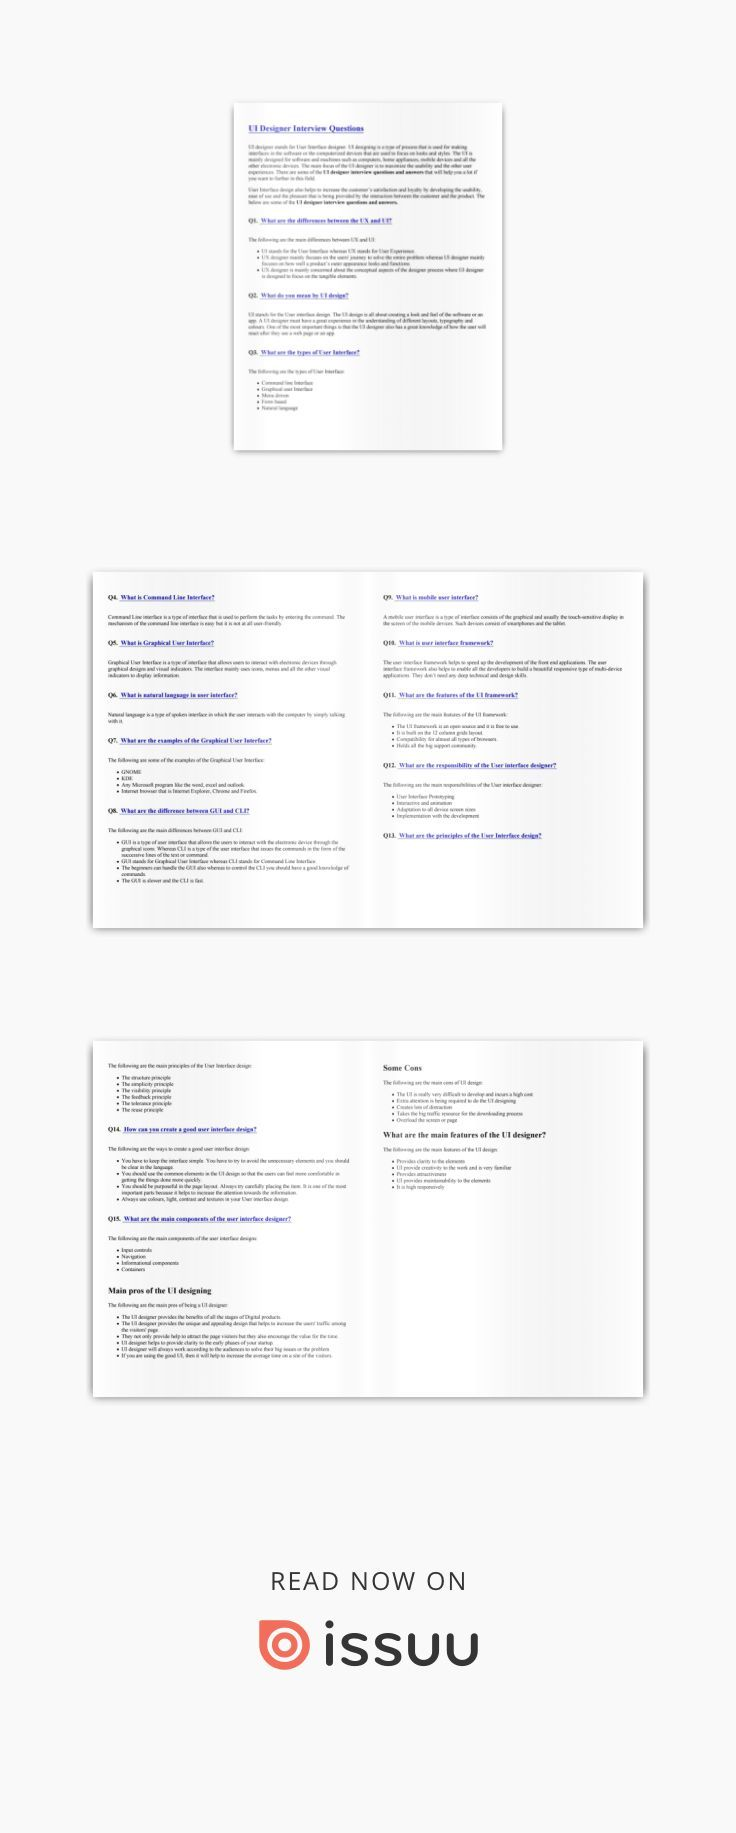 Ui designer interview questions pdf pinterest design and this or that also rh